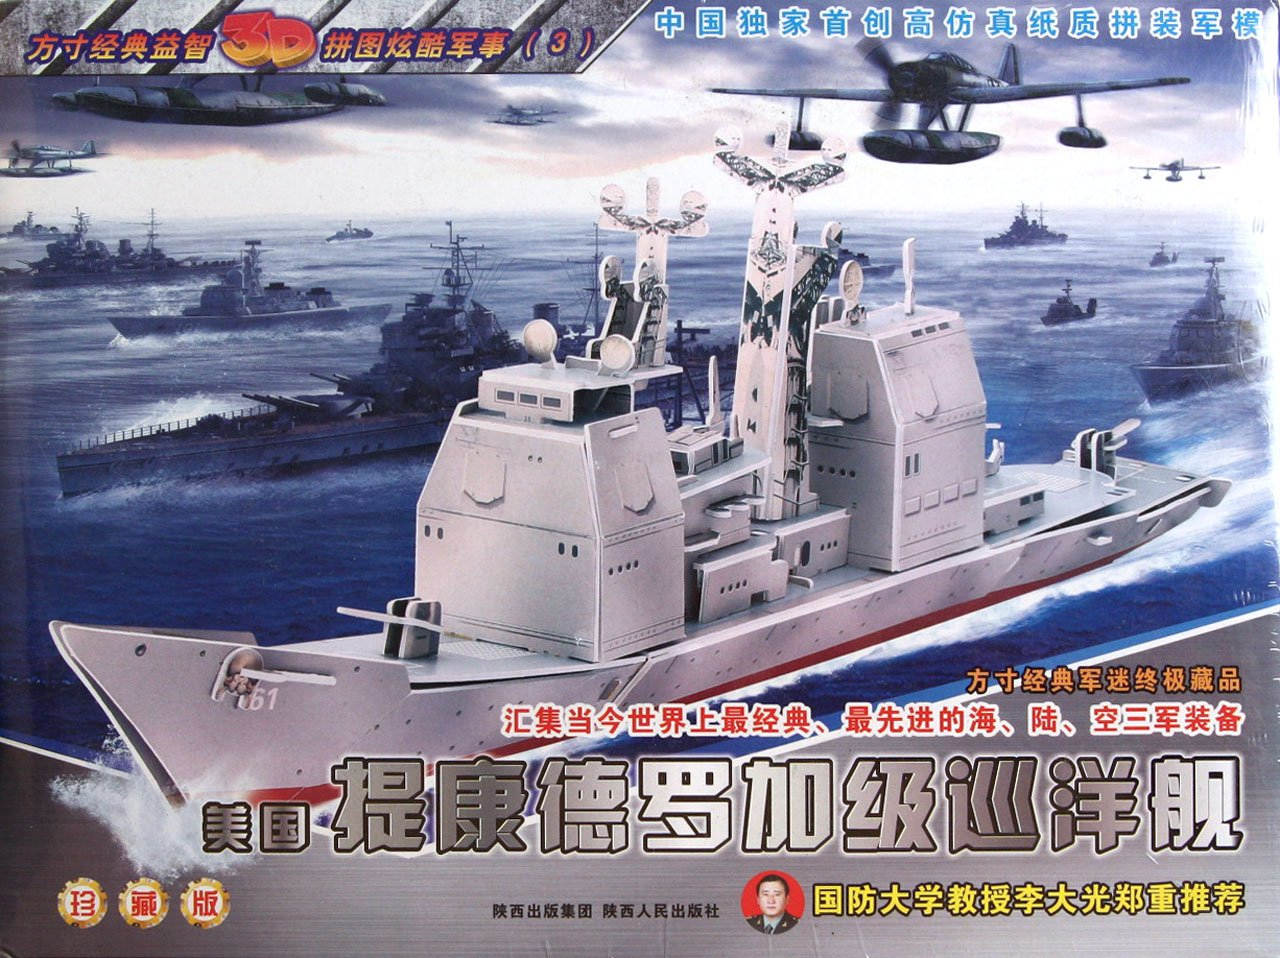 Download American Ticonderoga-class Cruisers - Small Sized Classic Puzzled 3D Cool Military Military (3) -Collectors Edition (Chinese Edition) pdf epub